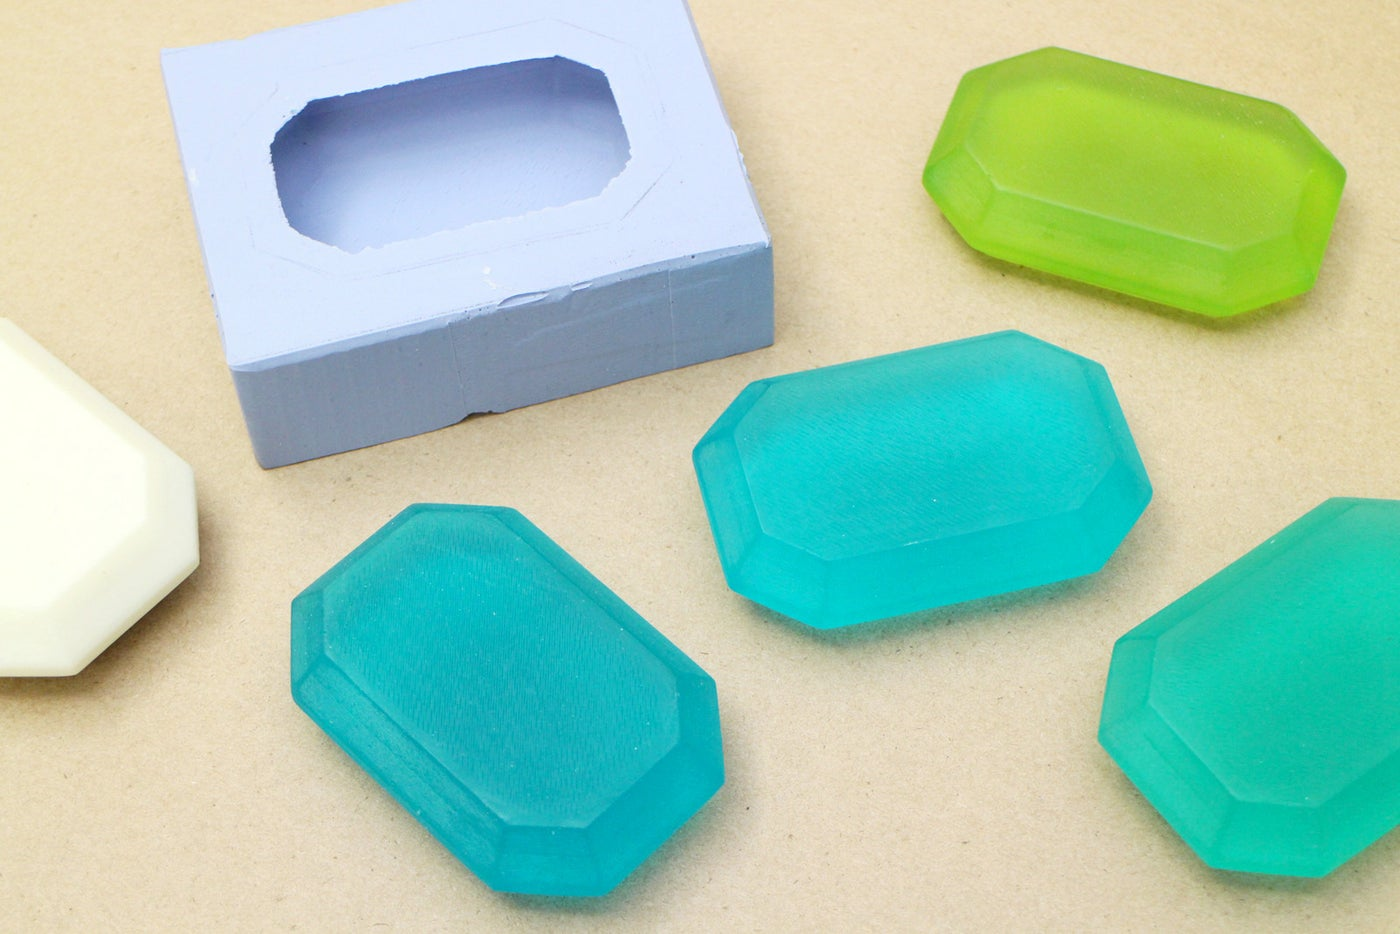 Casting the Molds in Soap